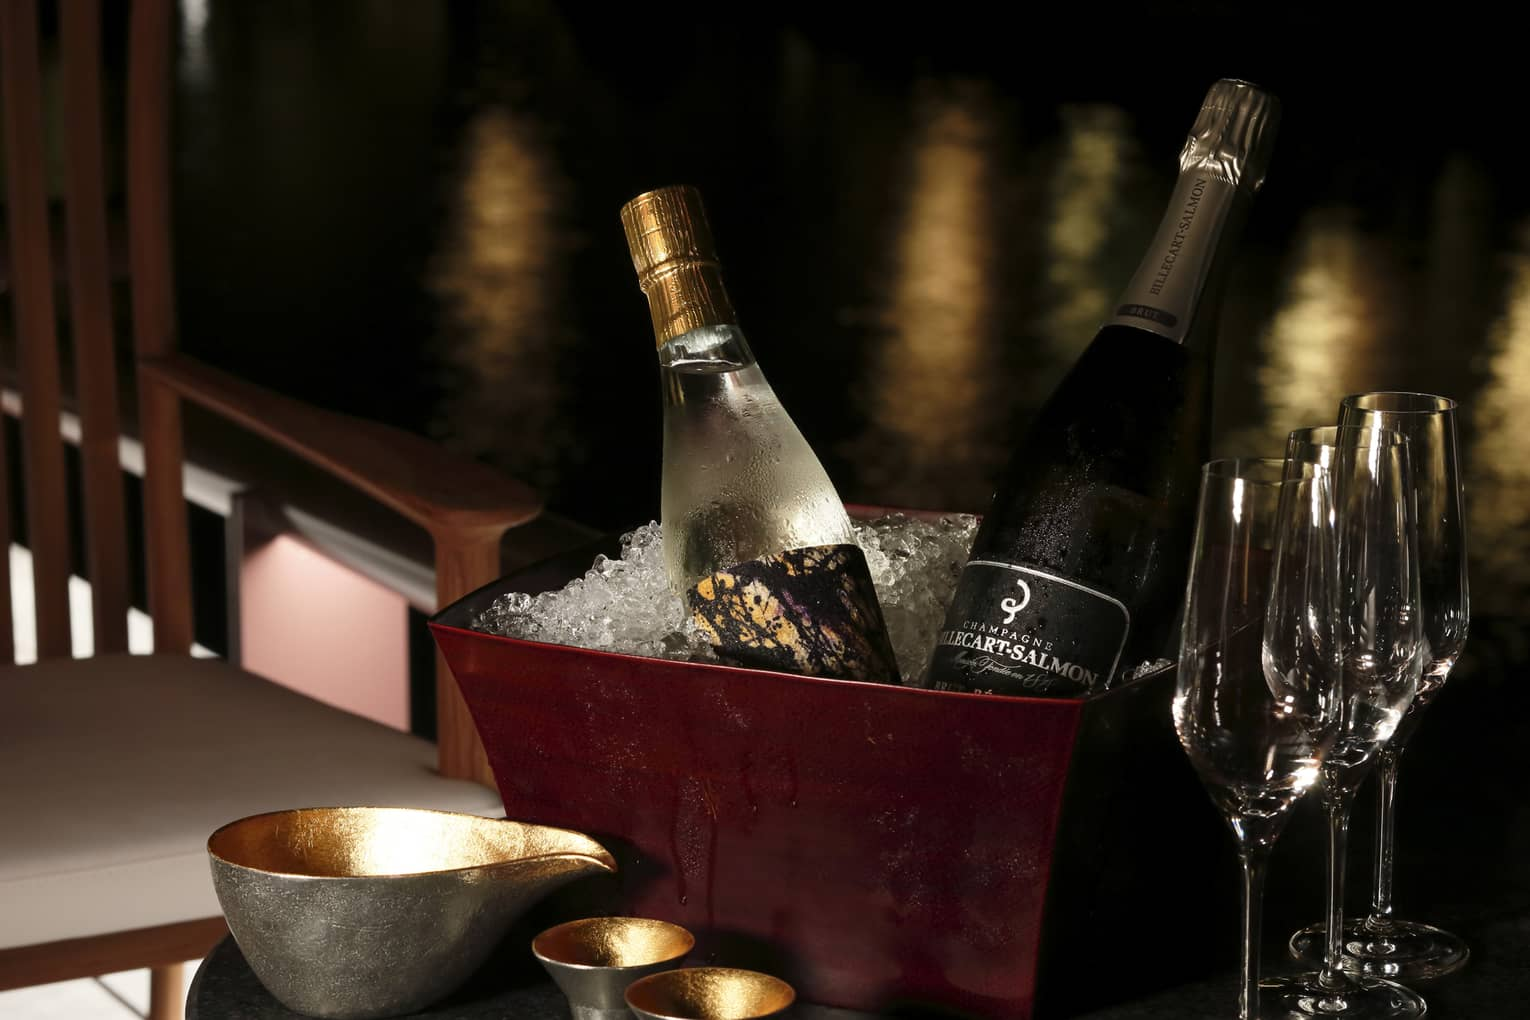 Bottles of sake and Champagne in brown ice bucket on table with glasses